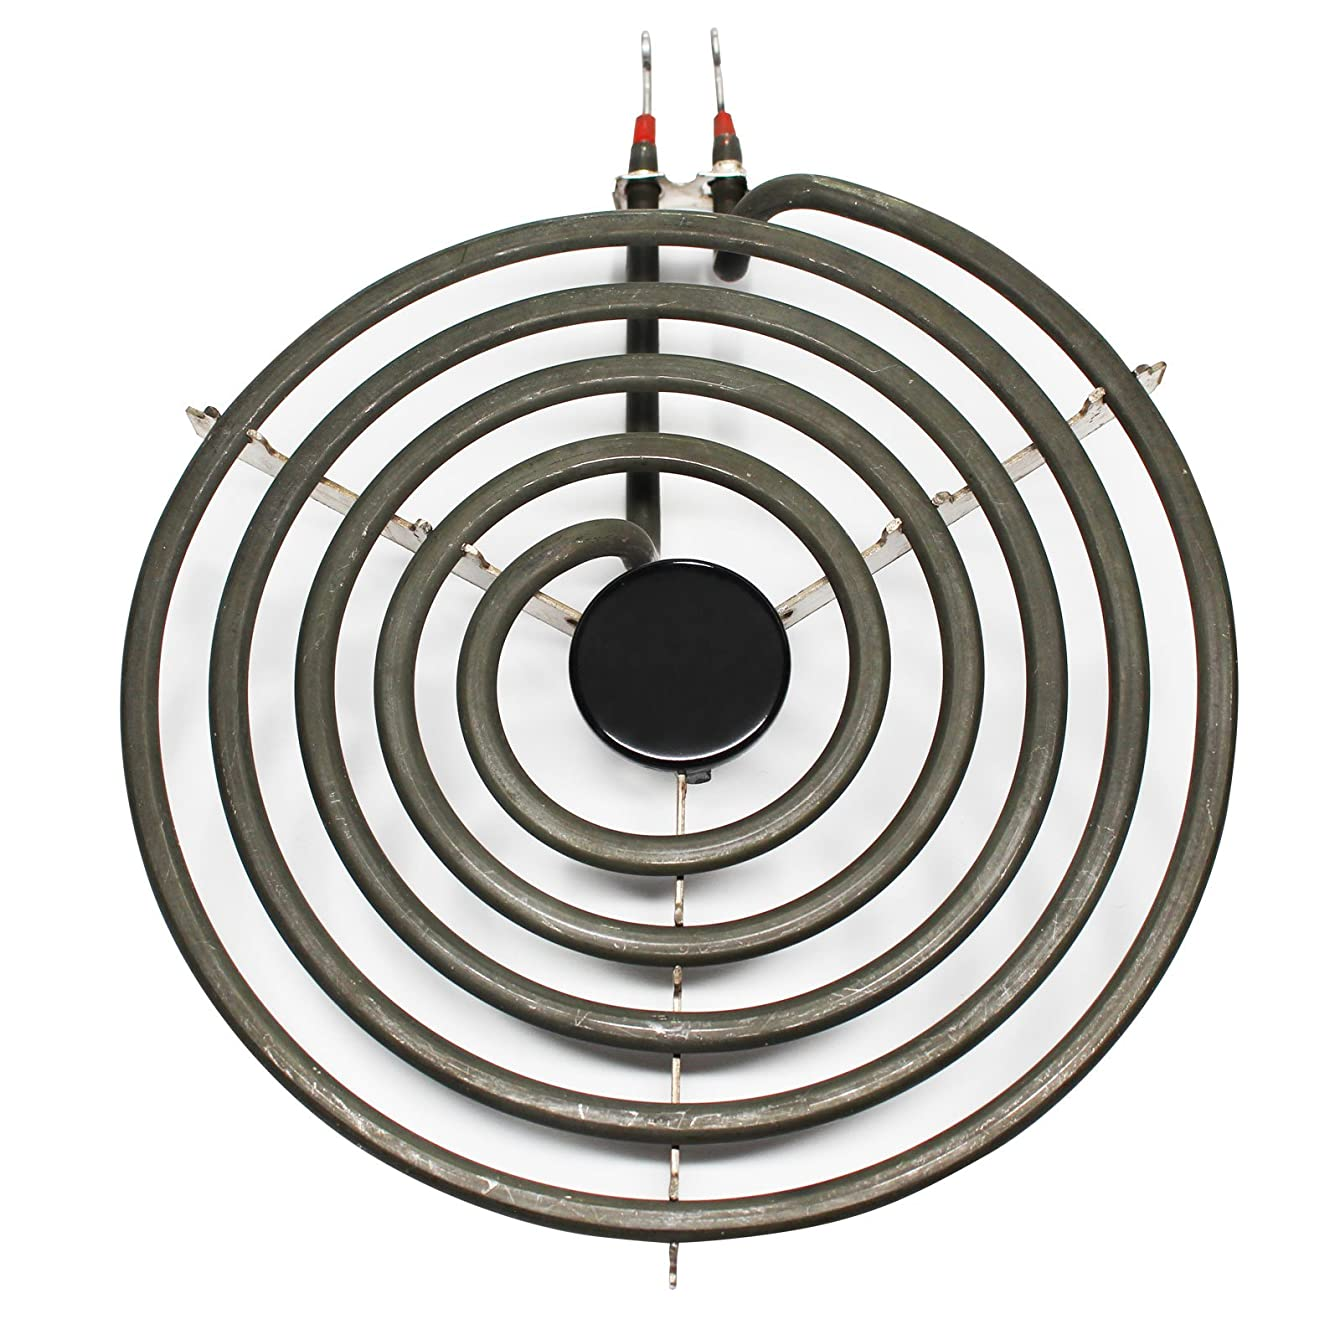 UpStart Components Replacement Kenmore/Sears 79090812405 8 inch 5 Turns Surface Burner Element - Compatible Kenmore/Sears 316442301 Heating Element for Range, Stove & Cooktop